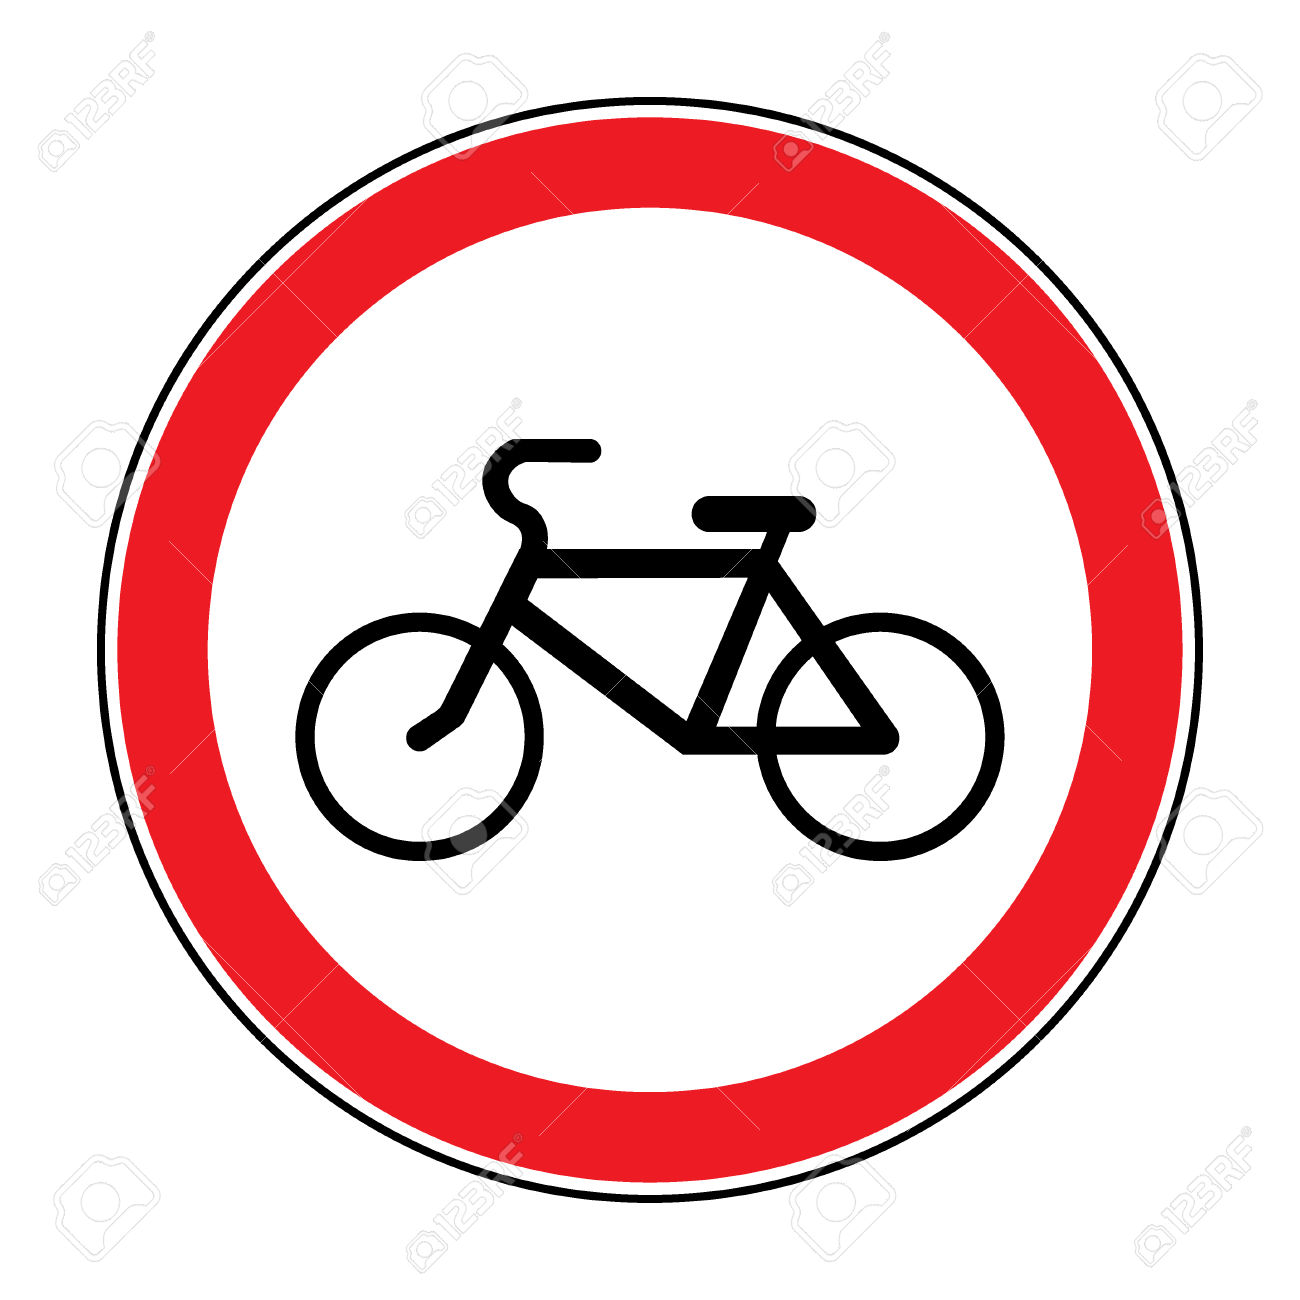 No Or Not Allowed Bicycles Symbol. Sign Indicating Prohibition.